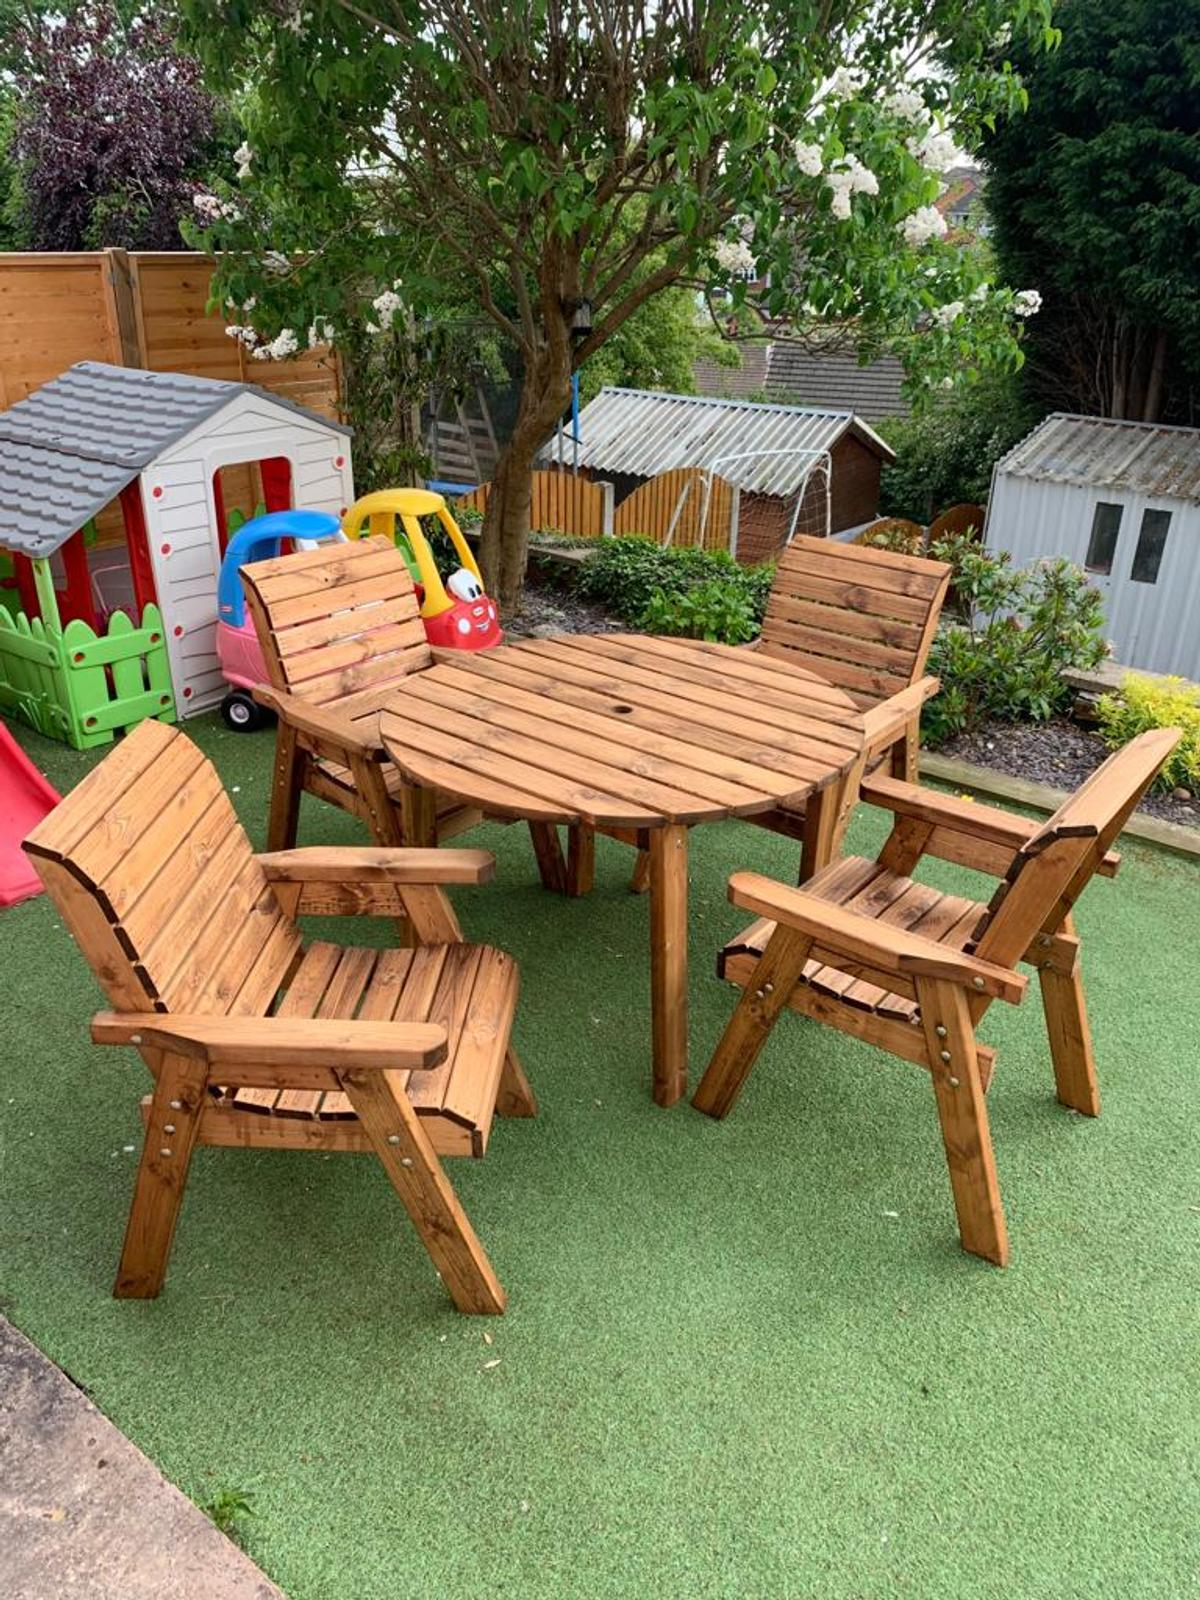 Prime Taylor Handmade Wooden Table And Chairs In Ws15 Lichfield Download Free Architecture Designs Rallybritishbridgeorg